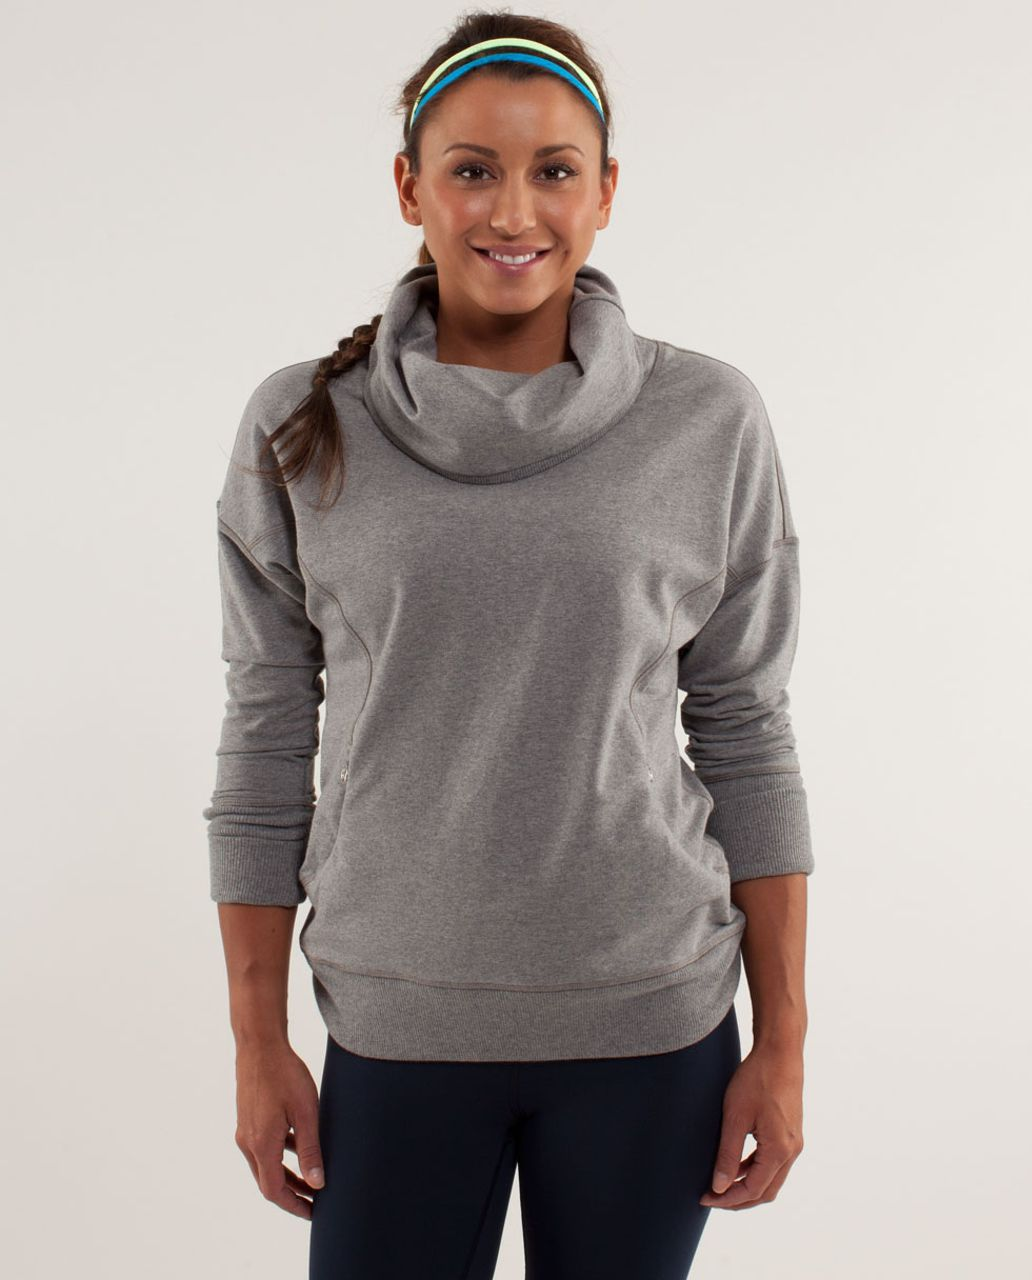 Lululemon Rest Day Pullover - Vintage Sports Grey